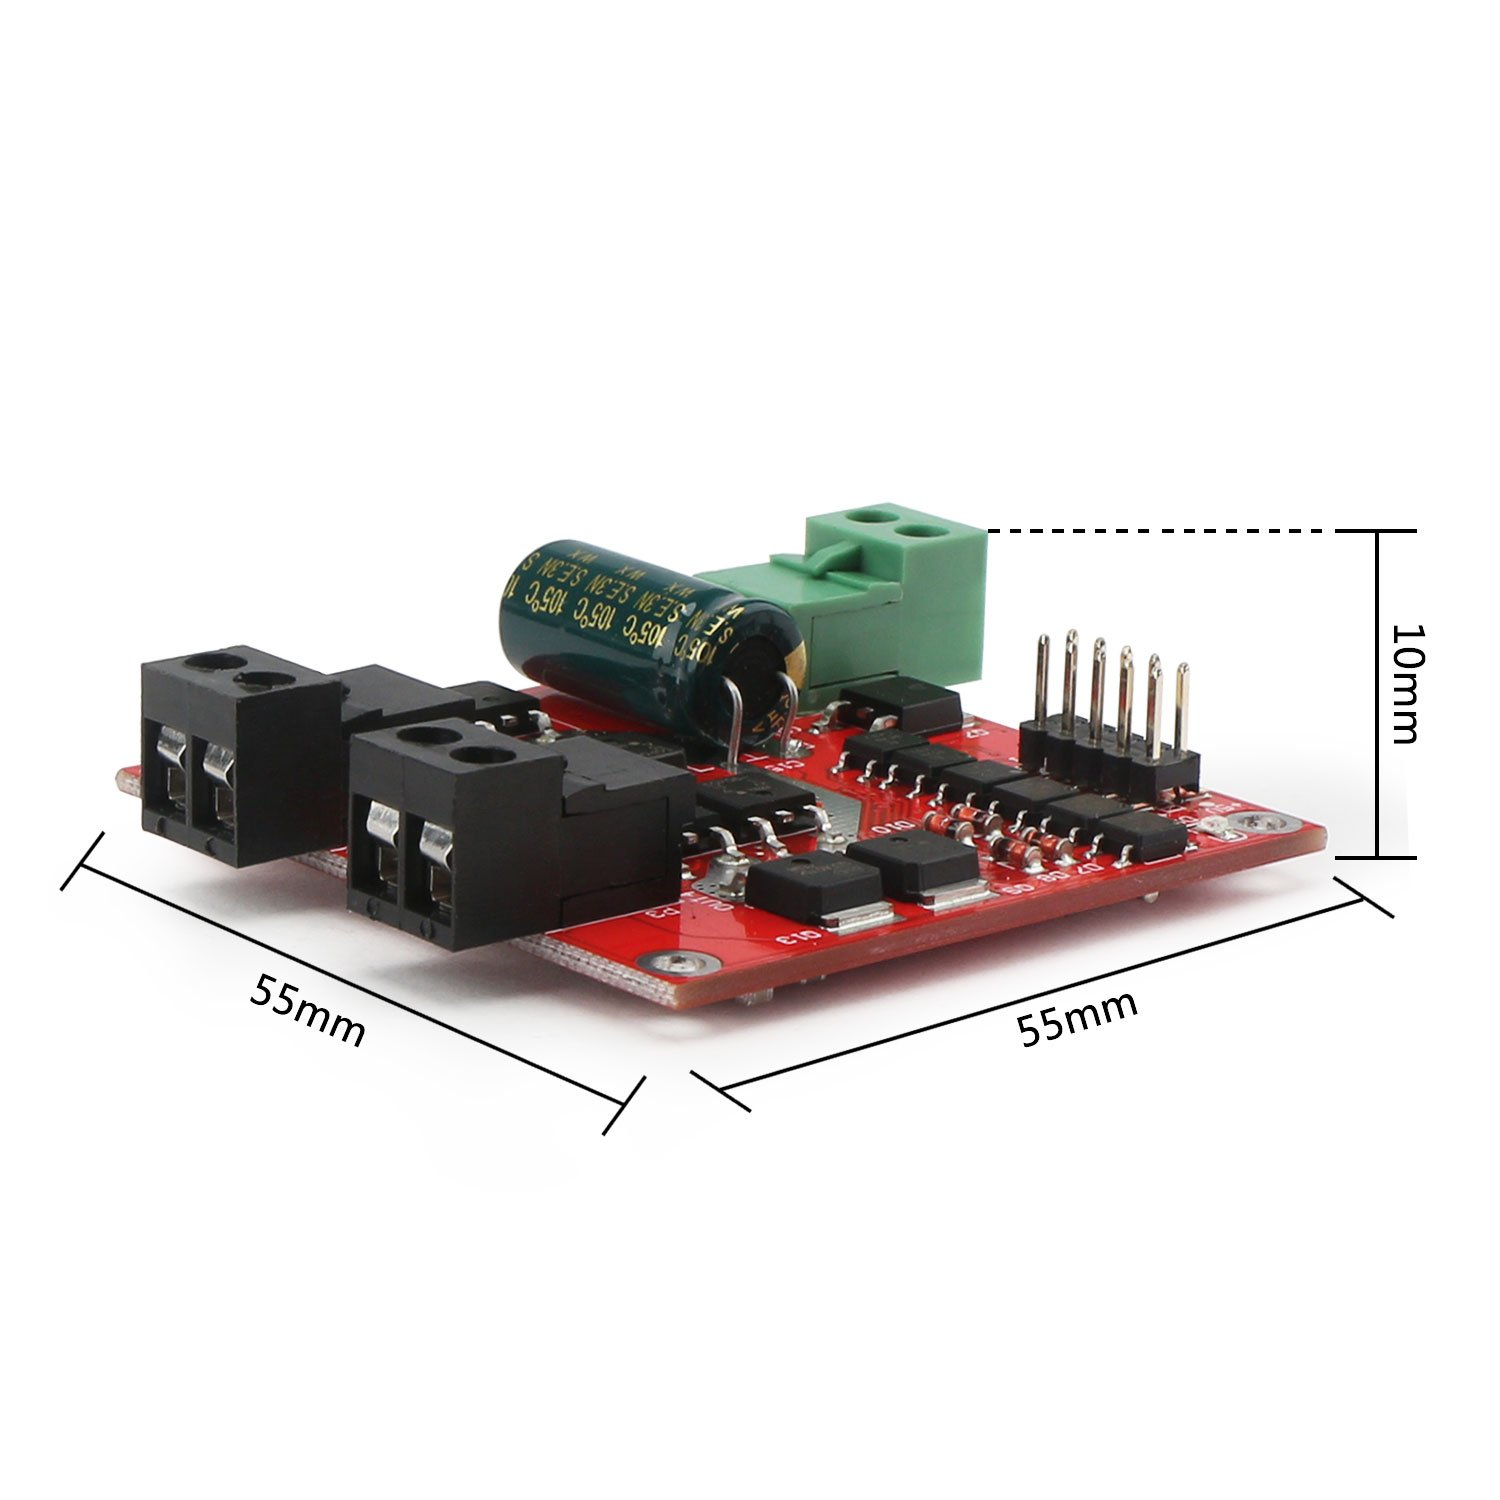 DC Motor Driver, DROK L298 Dual H Bridge Motor Speed Controller DC 6.5V-27V 7A PWM Motor Regulator Board 12V 24V Electric Motor Control Module Industrial 160W with Optocoupler Isolation by DROK (Image #7)